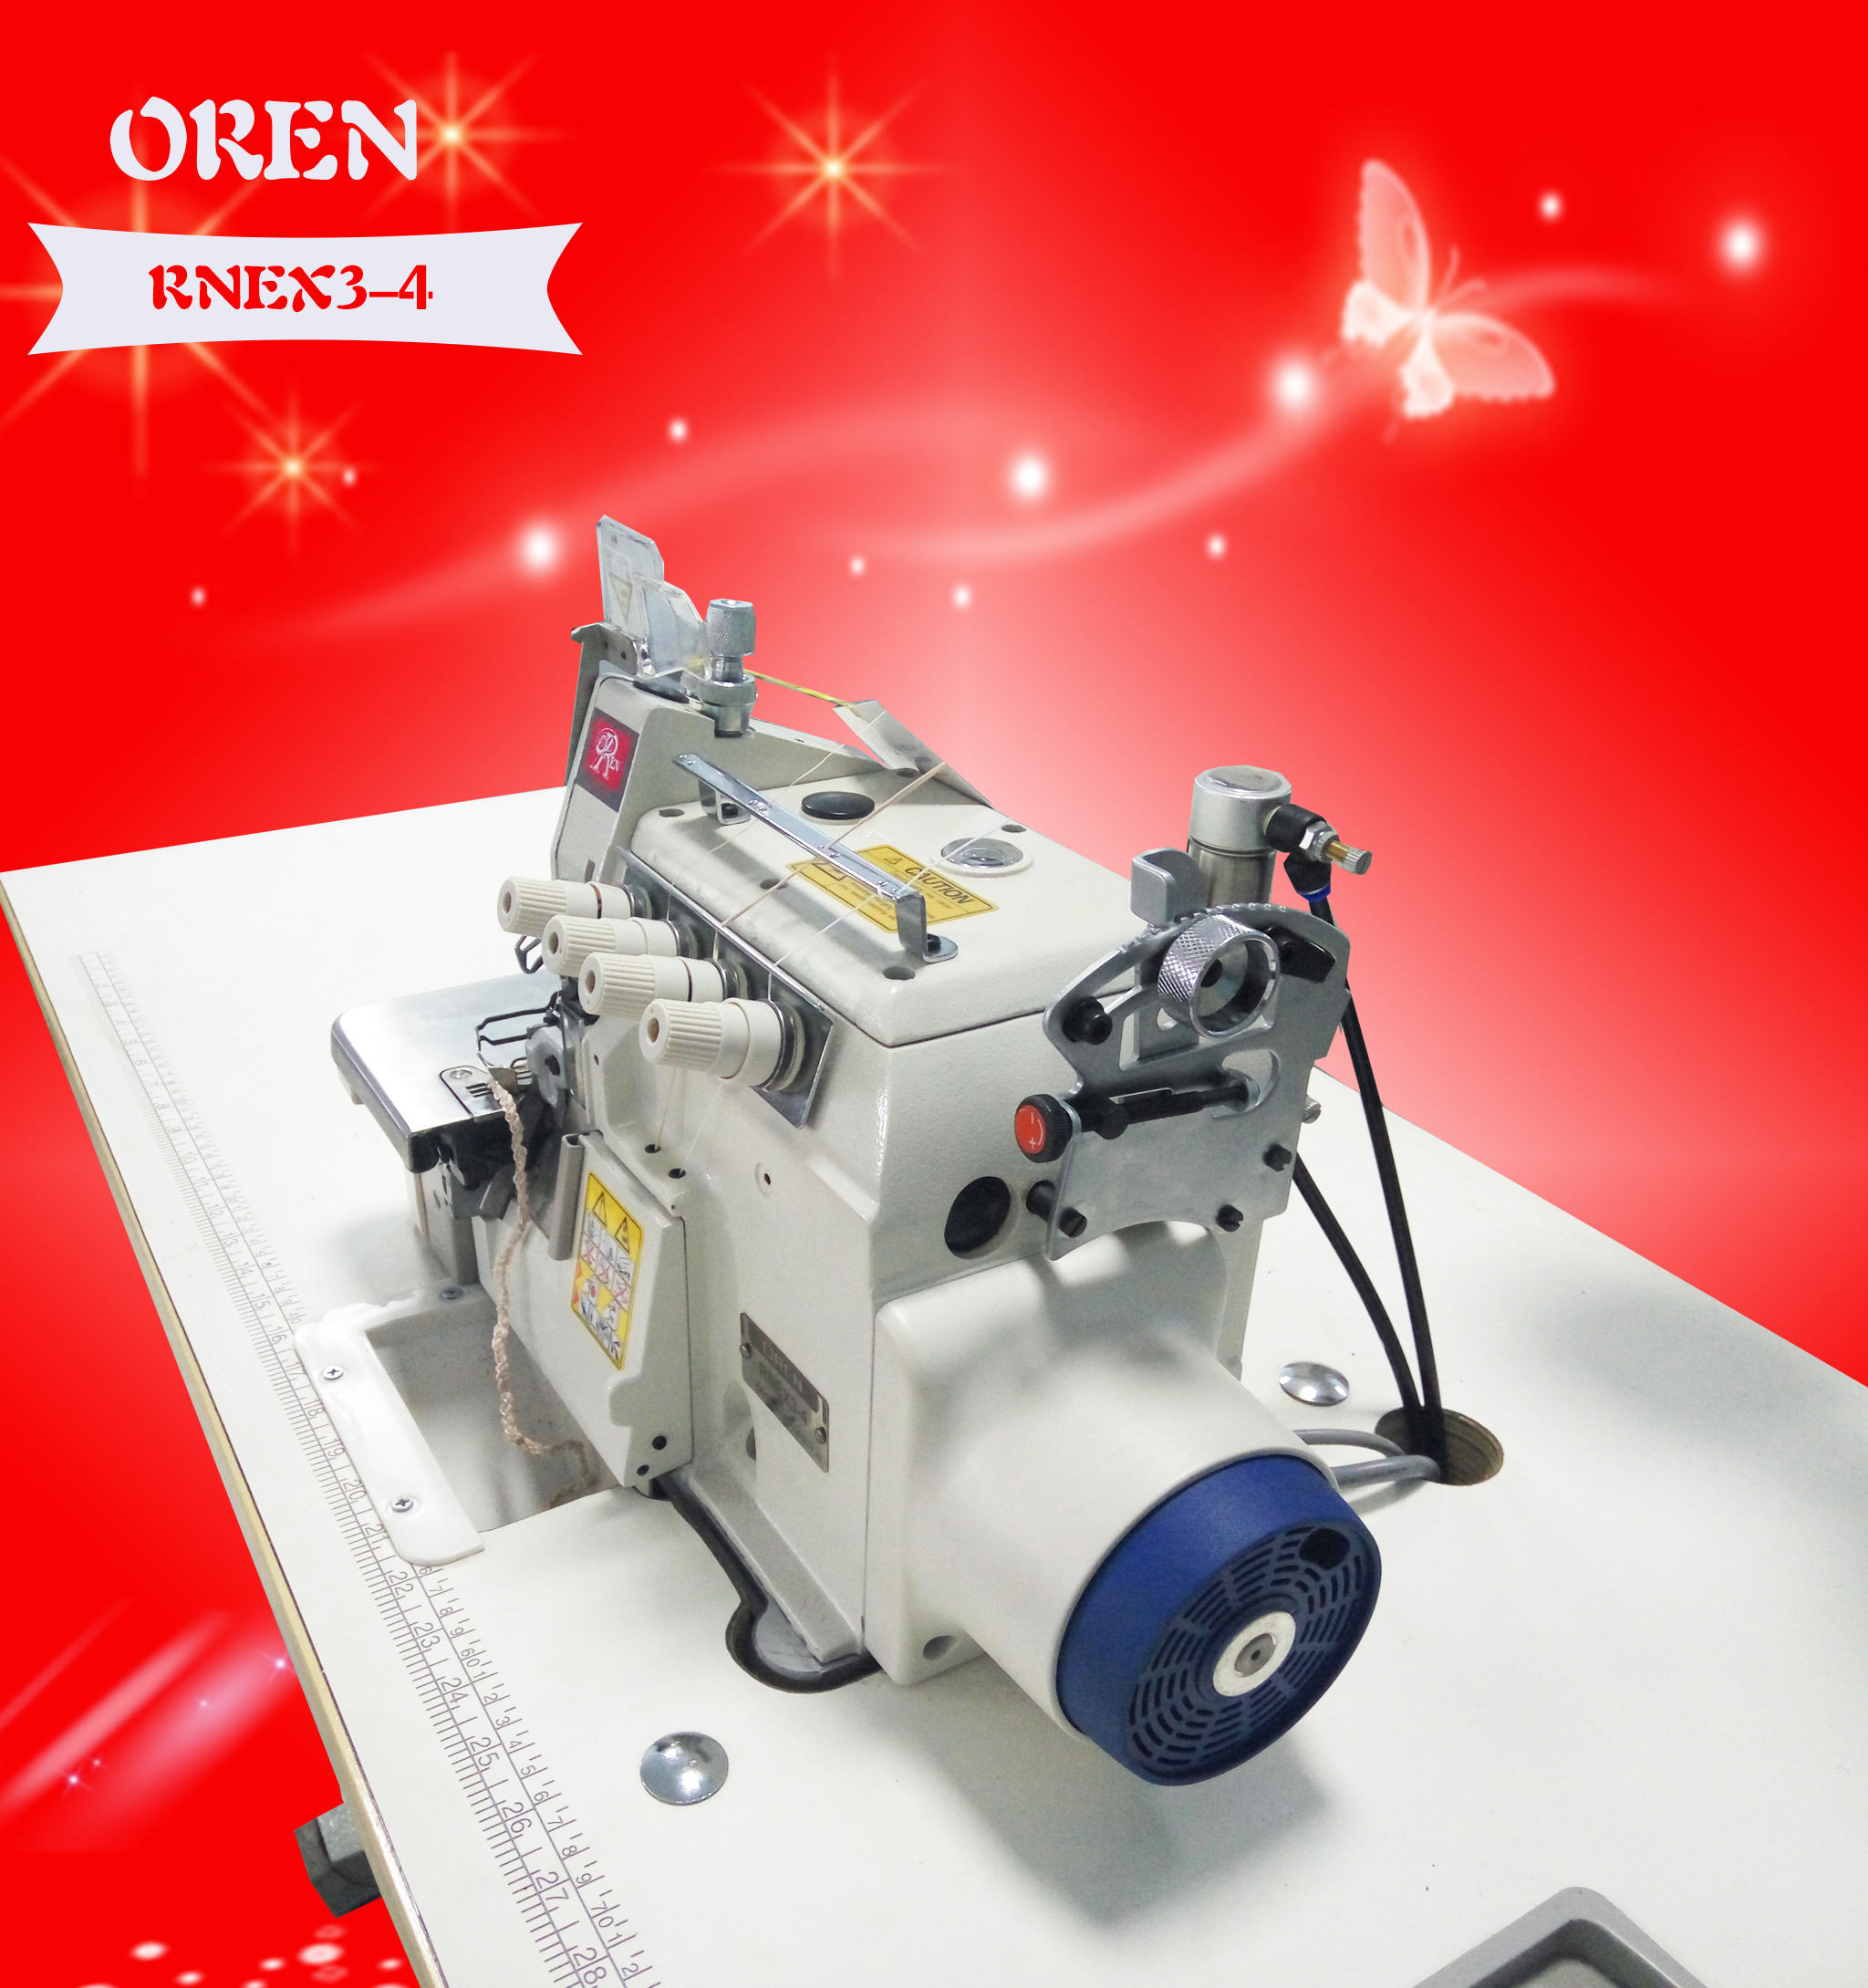 RNEX3-4 serger sewing machine for Manufacturers direct thick material edge machine